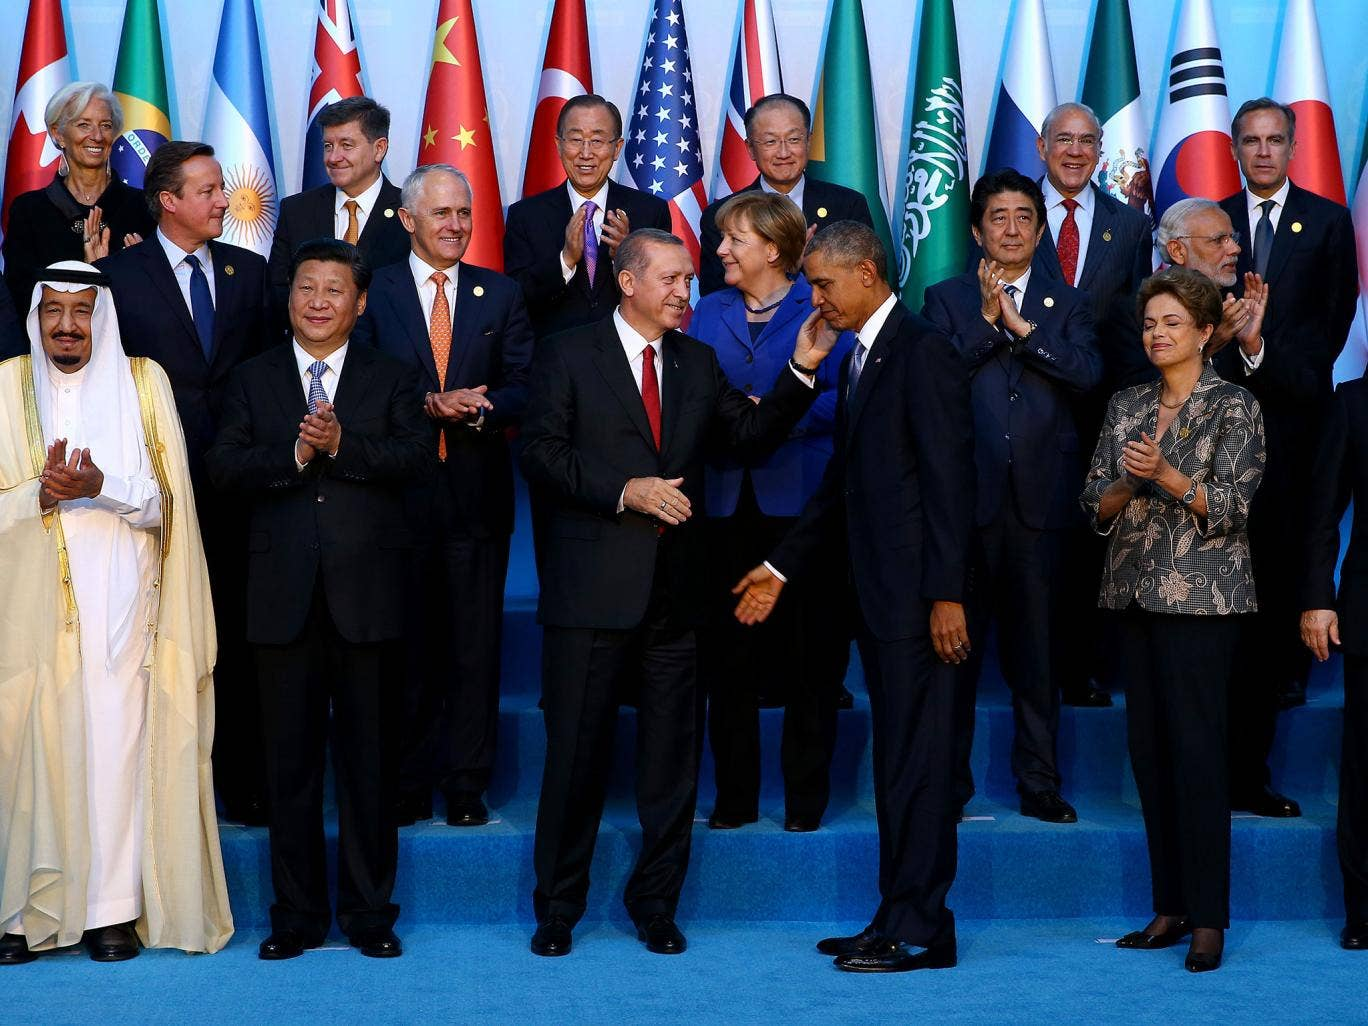 The G20 leaders meet in Antalya, Turkey